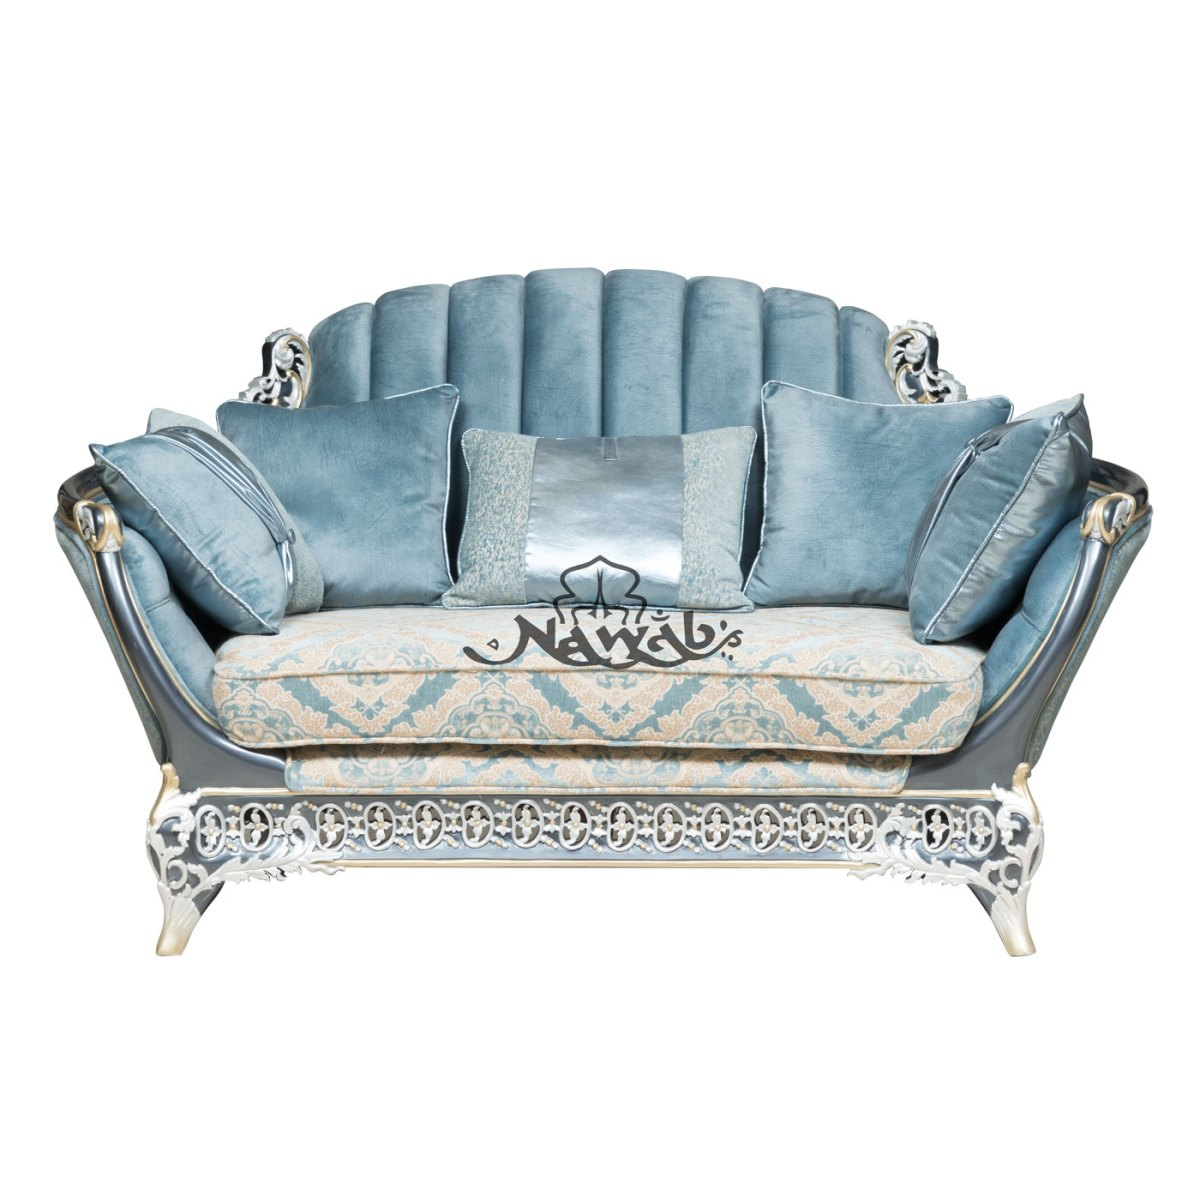 2-seater-teakwood-hand-carved-sofa-blue-white-pearl-polish-with-golden-lining-high-end-suede-upholstery-table-blue-onyx-top